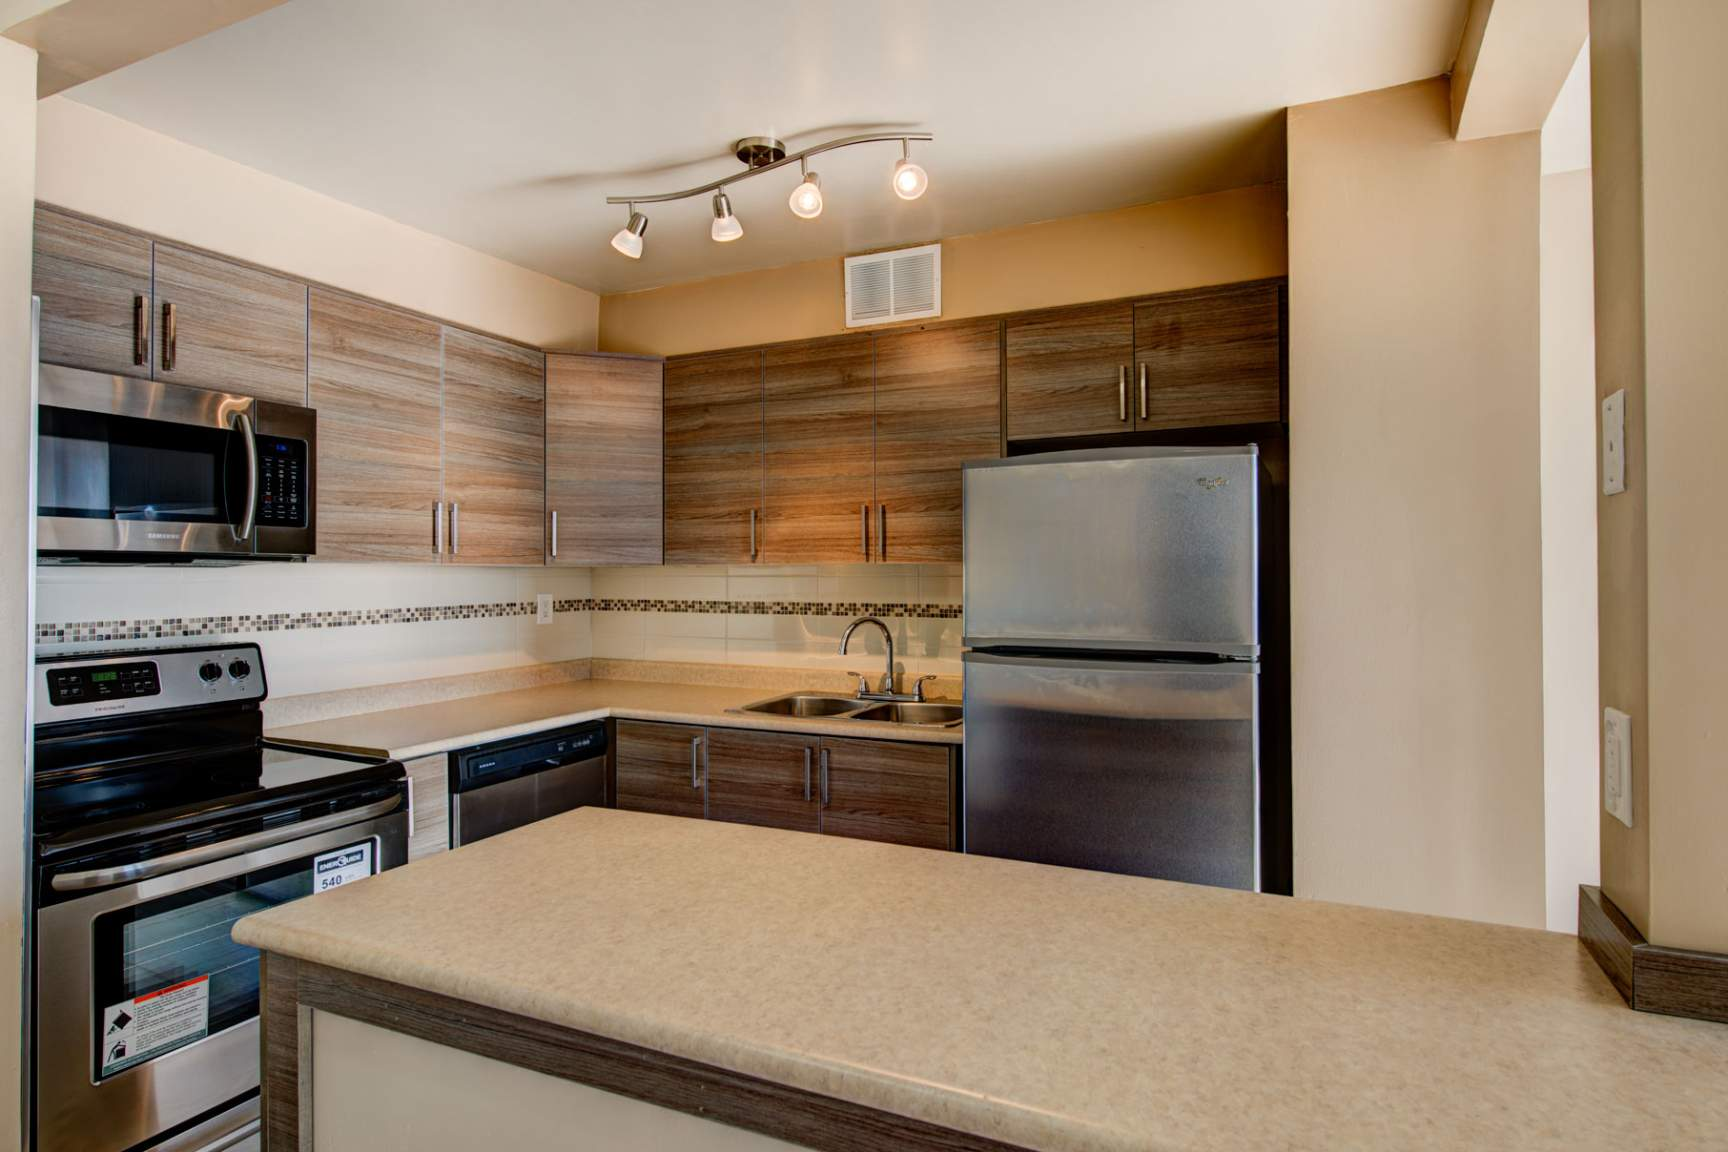 1 bedroom Apartments for rent in North-York at Hunters Lodge - Photo 22 - RentersPages – L400651